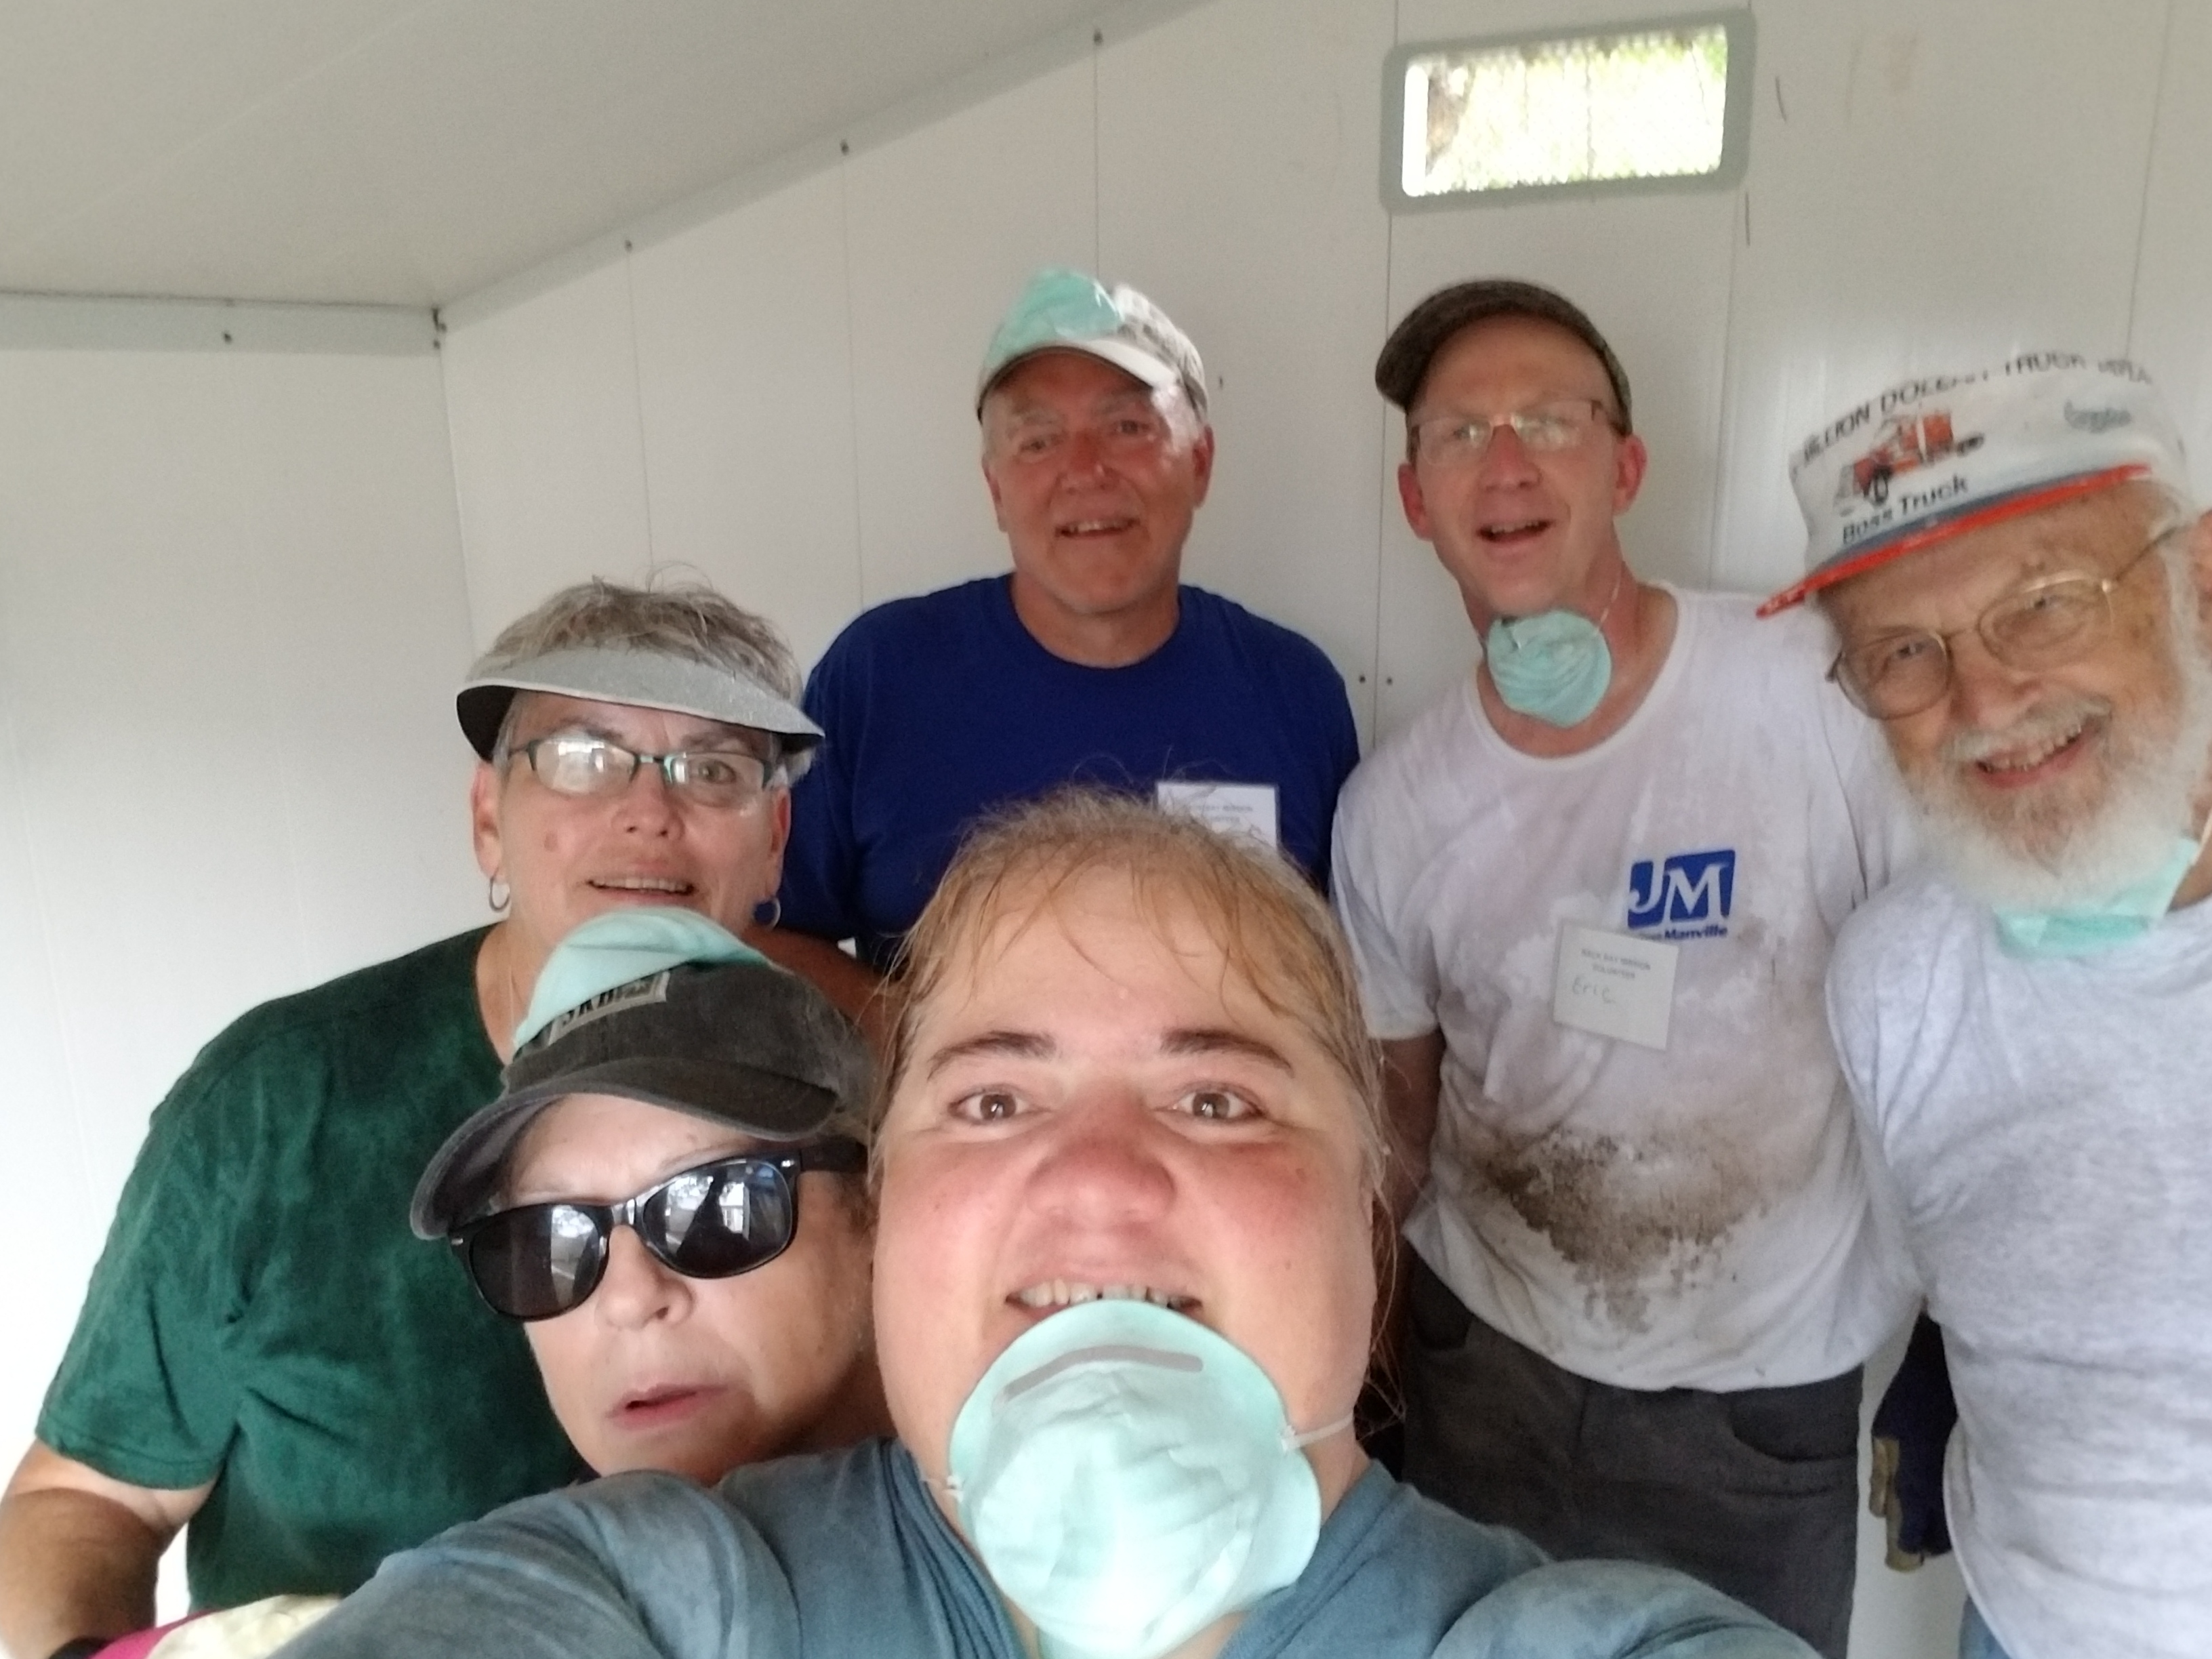 2017 Volunteers: Peace Lutheran Church (Oshkosh, WI) and Dover UCC (Westlake, OH)